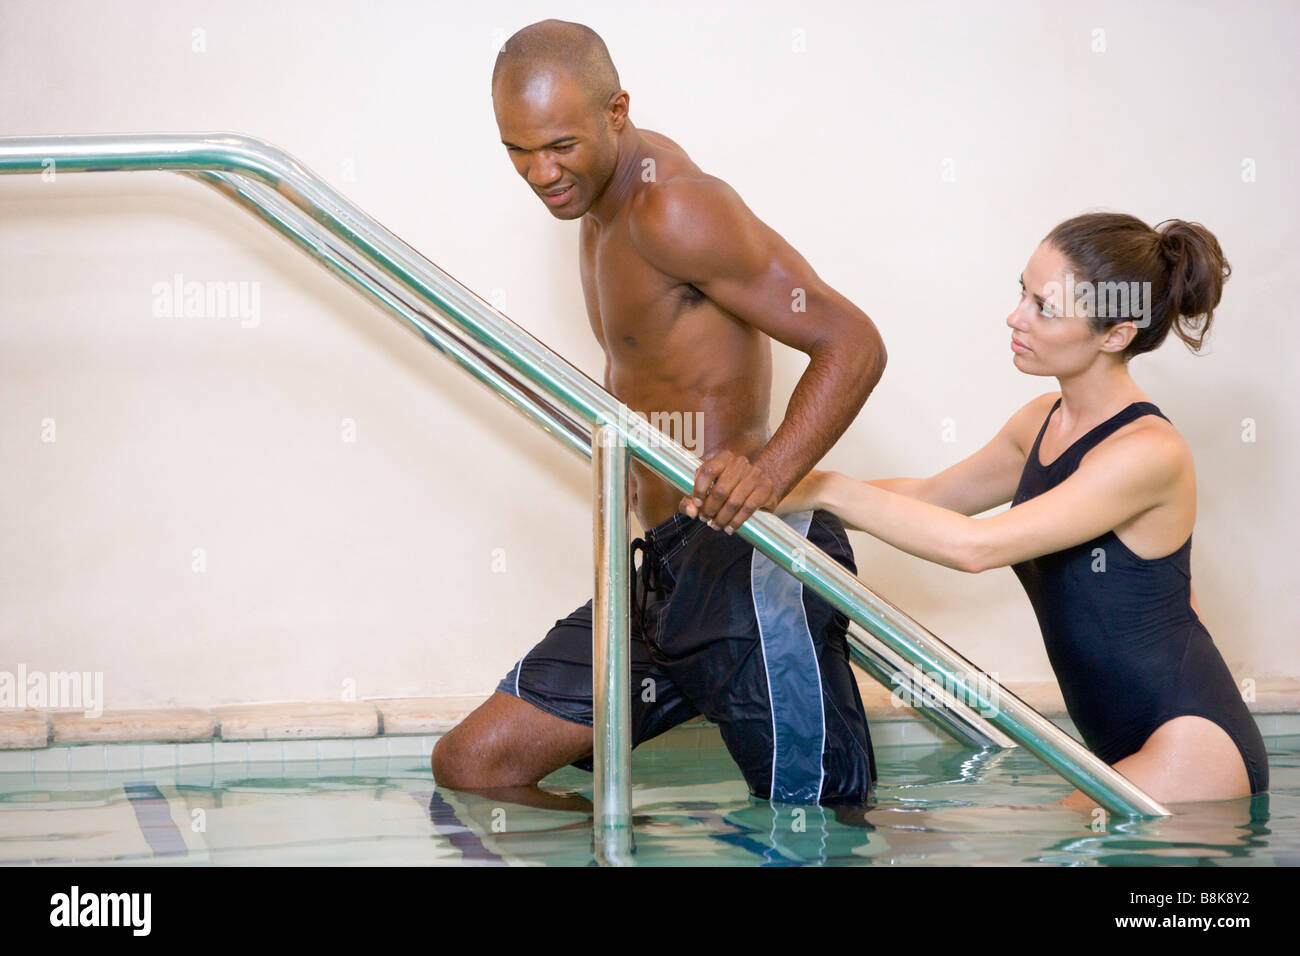 Instructor And Patient Undergoing Water Therapy - Stock Image